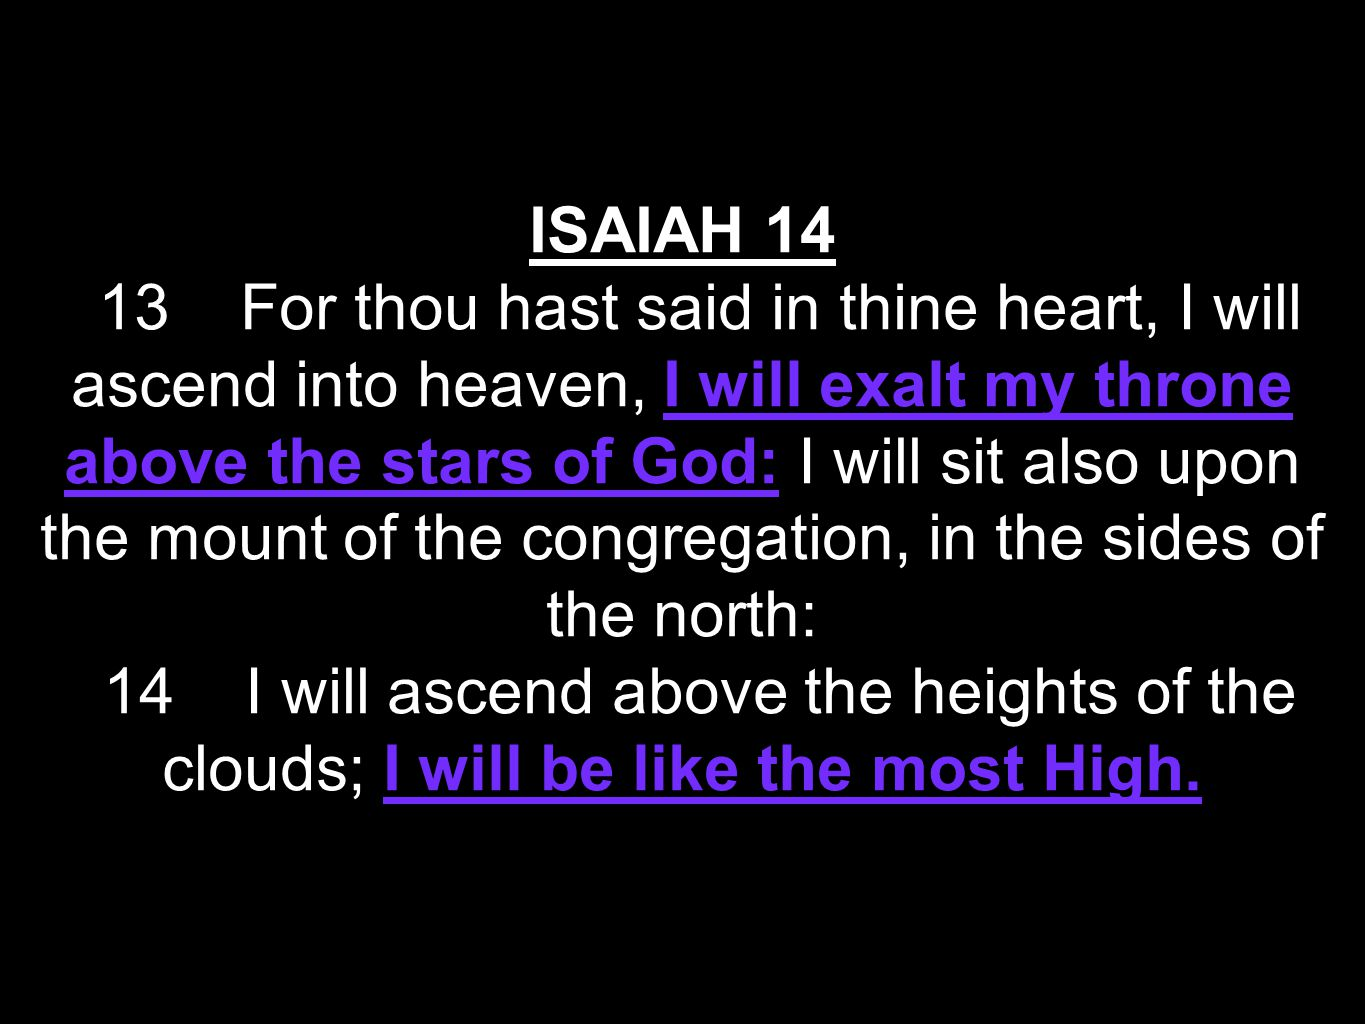 ISAIAH 14 13 For thou hast said in thine heart, I will ascend into heaven, I will exalt my throne above the stars of God: I will sit also upon the mount of the congregation, in the sides of the north: 14 I will ascend above the heights of the clouds; I will be like the most High.